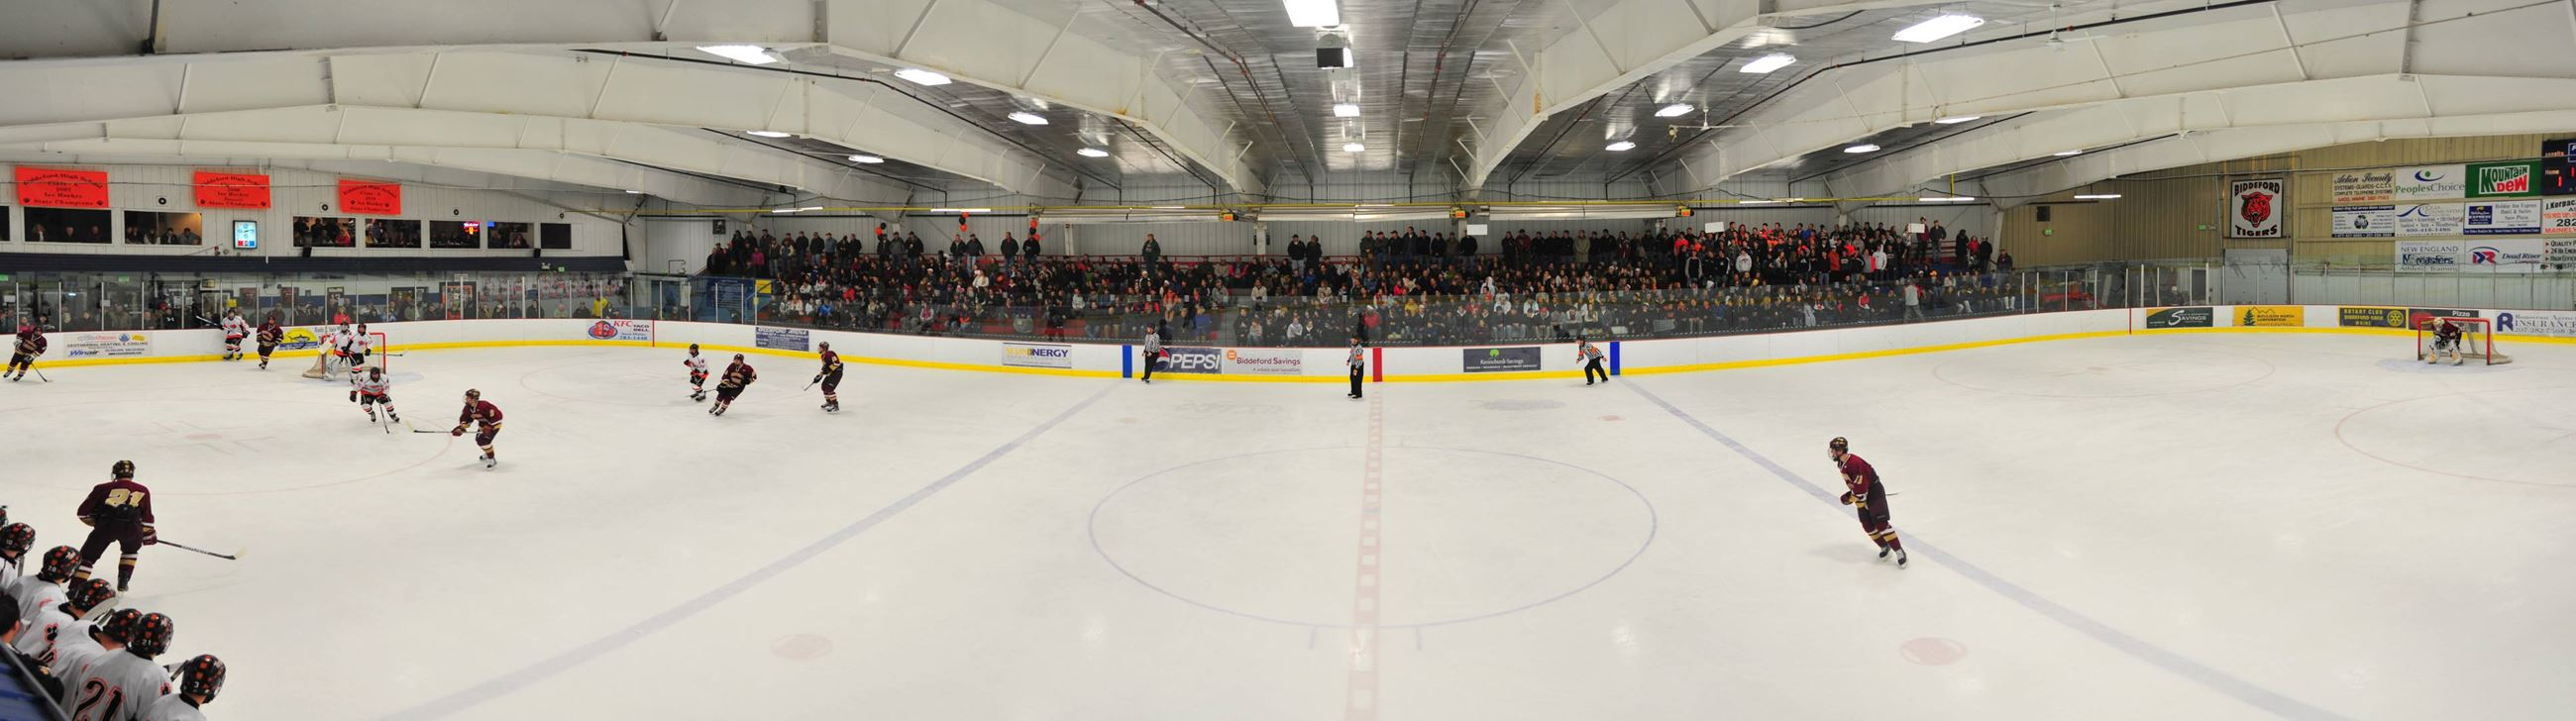 Biddeford Arena and Expo Center